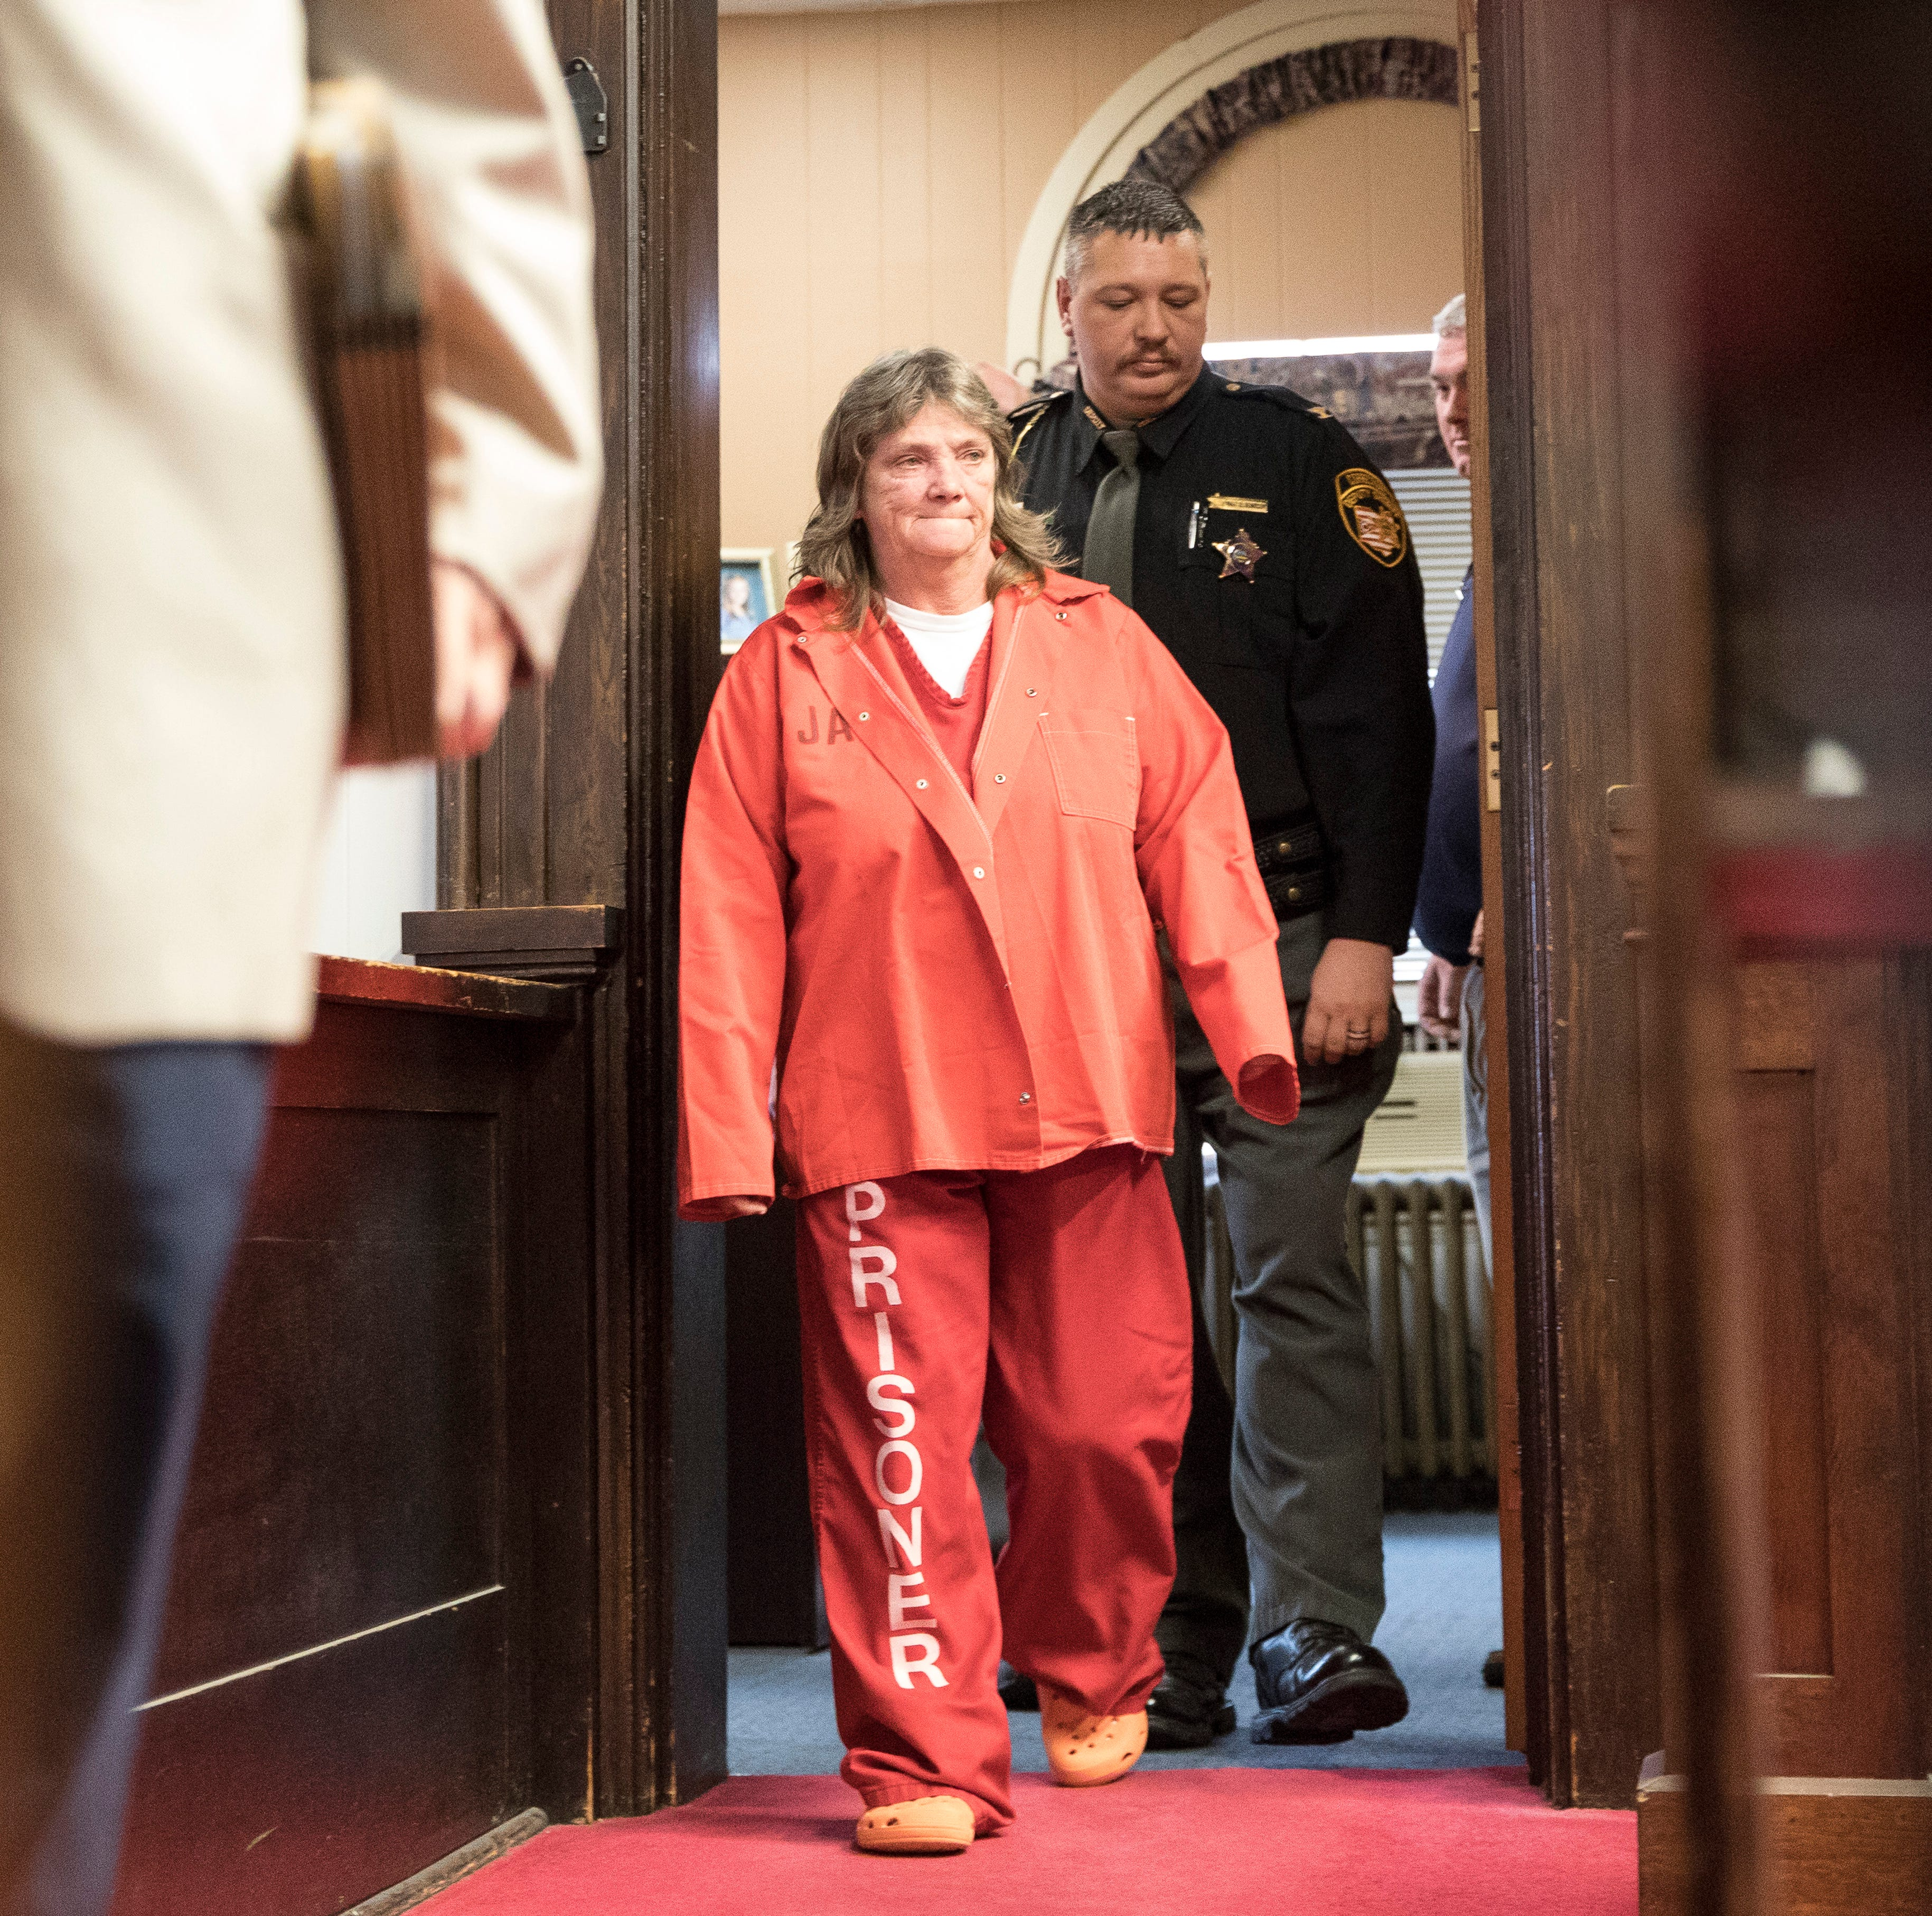 Pike County massacre: Rita Newcomb posts bond